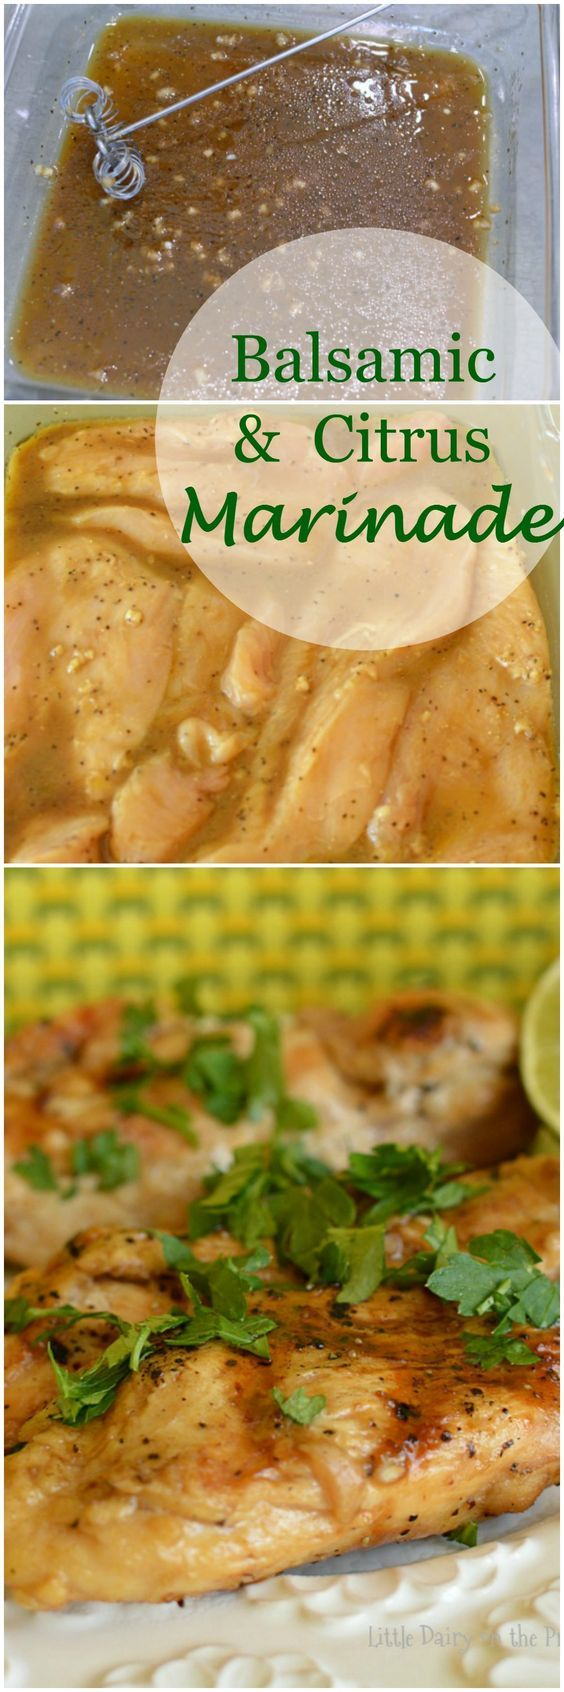 Balsamic and Citrus Marinade is my go to marinade for chicken. It's so easy, and delicious, you won't ever need to buy marinades again!